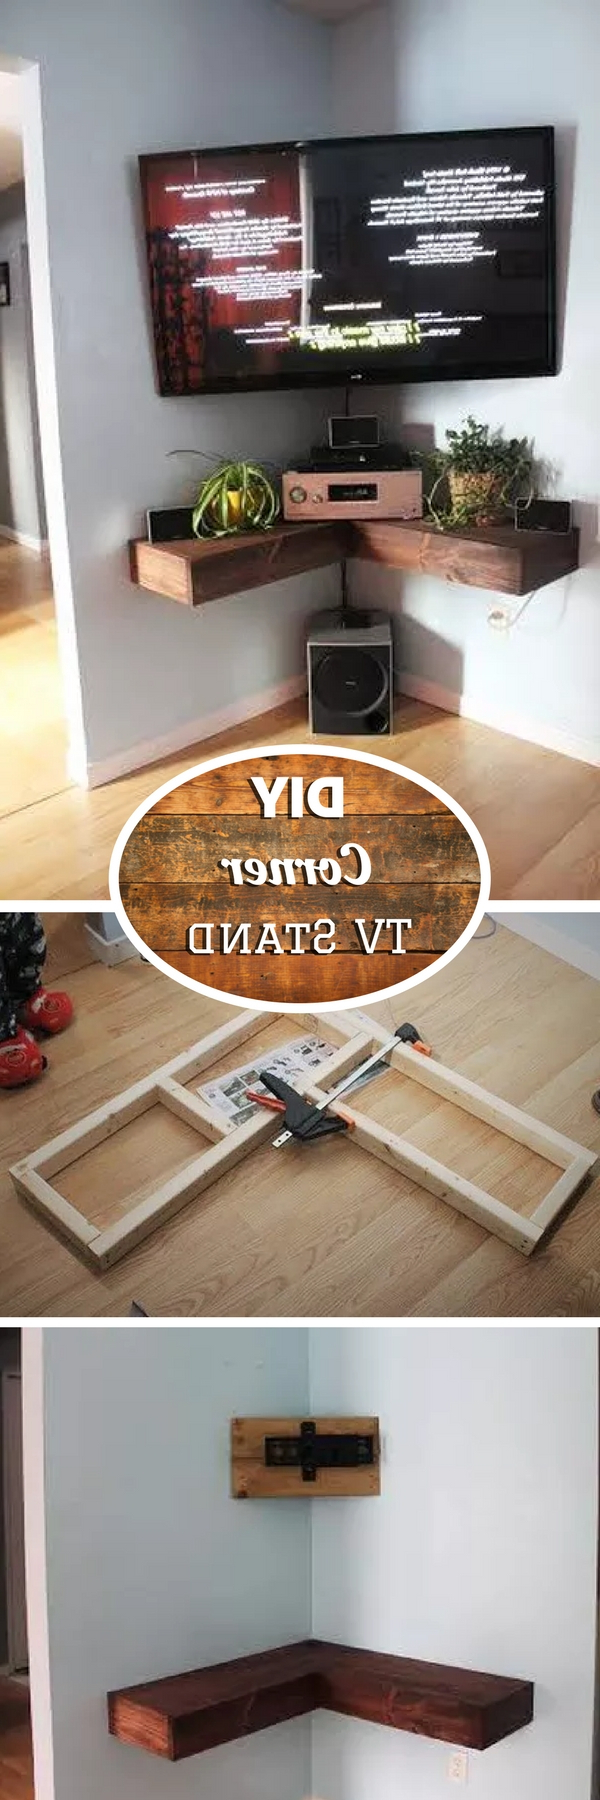 21+ Diy Tv Stand Ideas For Your Weekend Home Project Intended For Tobias Media Console Tables (View 11 of 20)